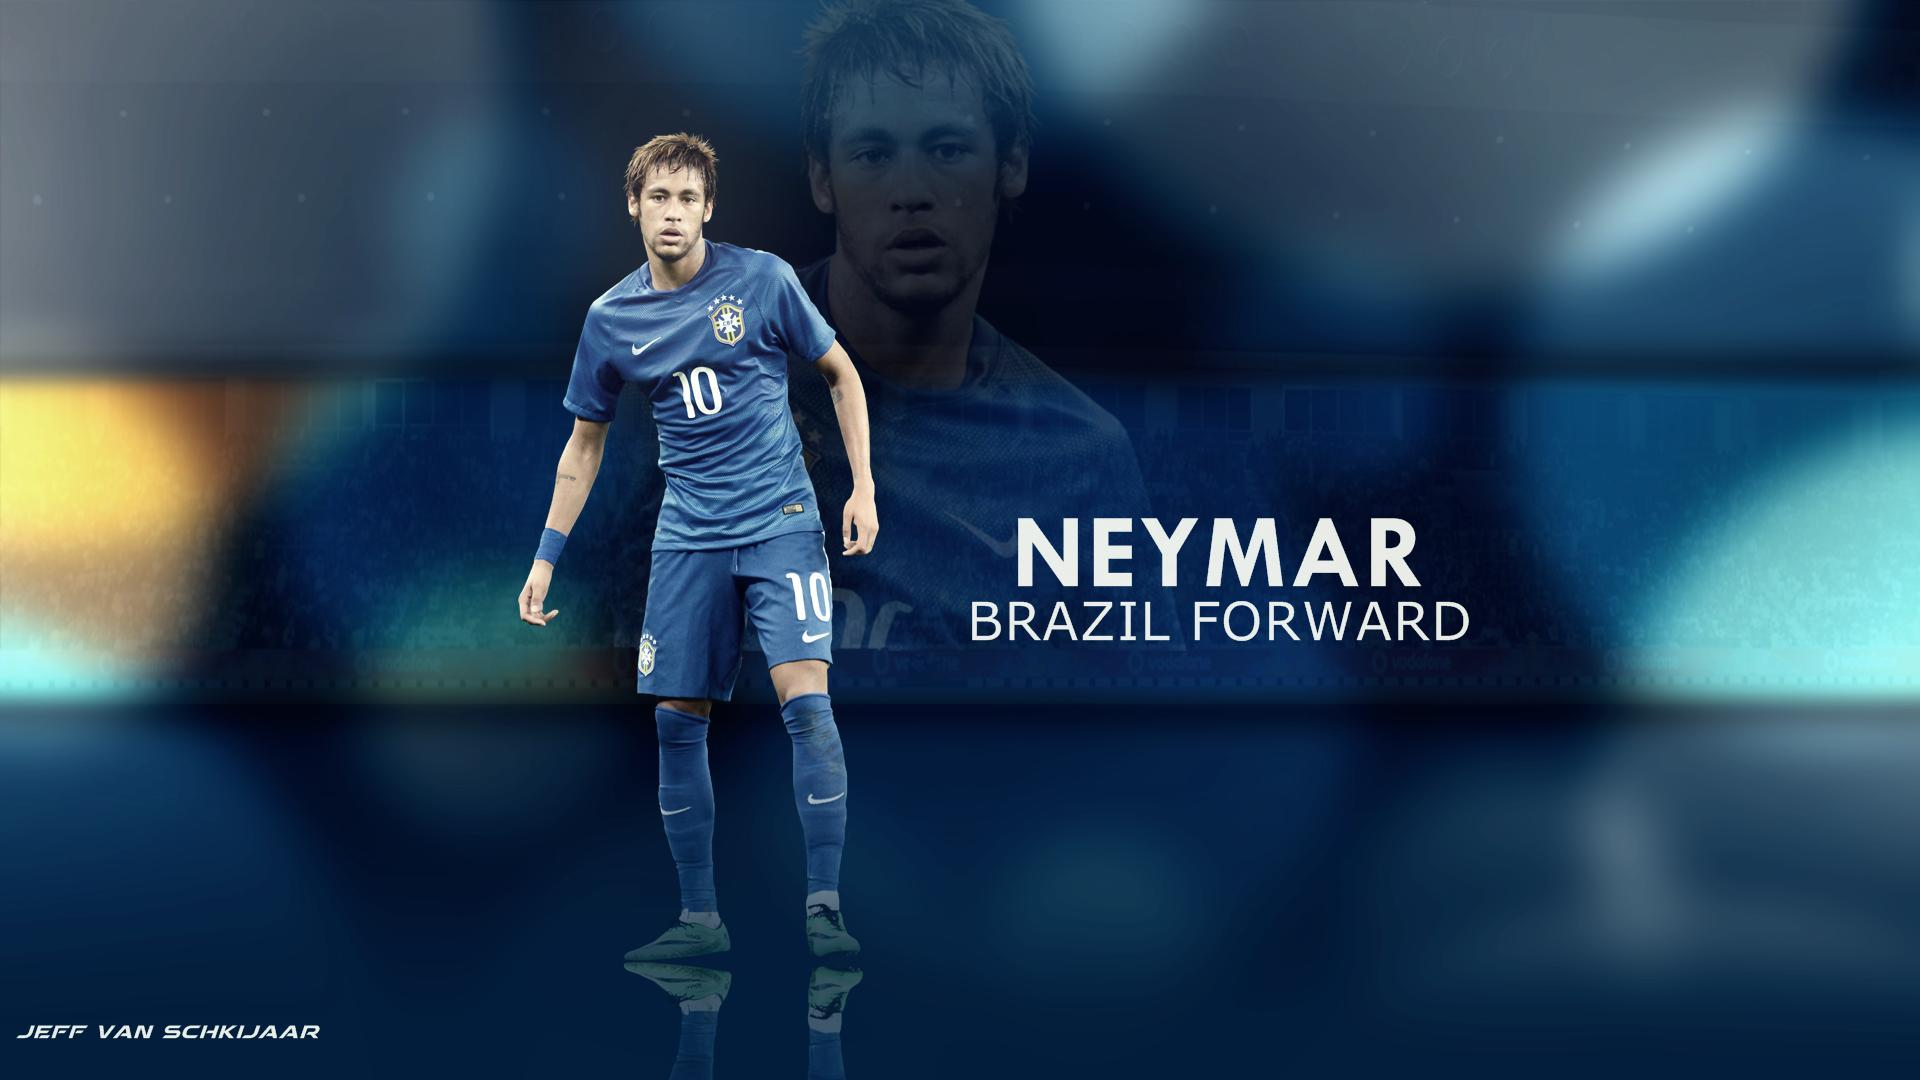 Hd wallpaper neymar - Nike Wallpapers 2015 Wallpaper Cave